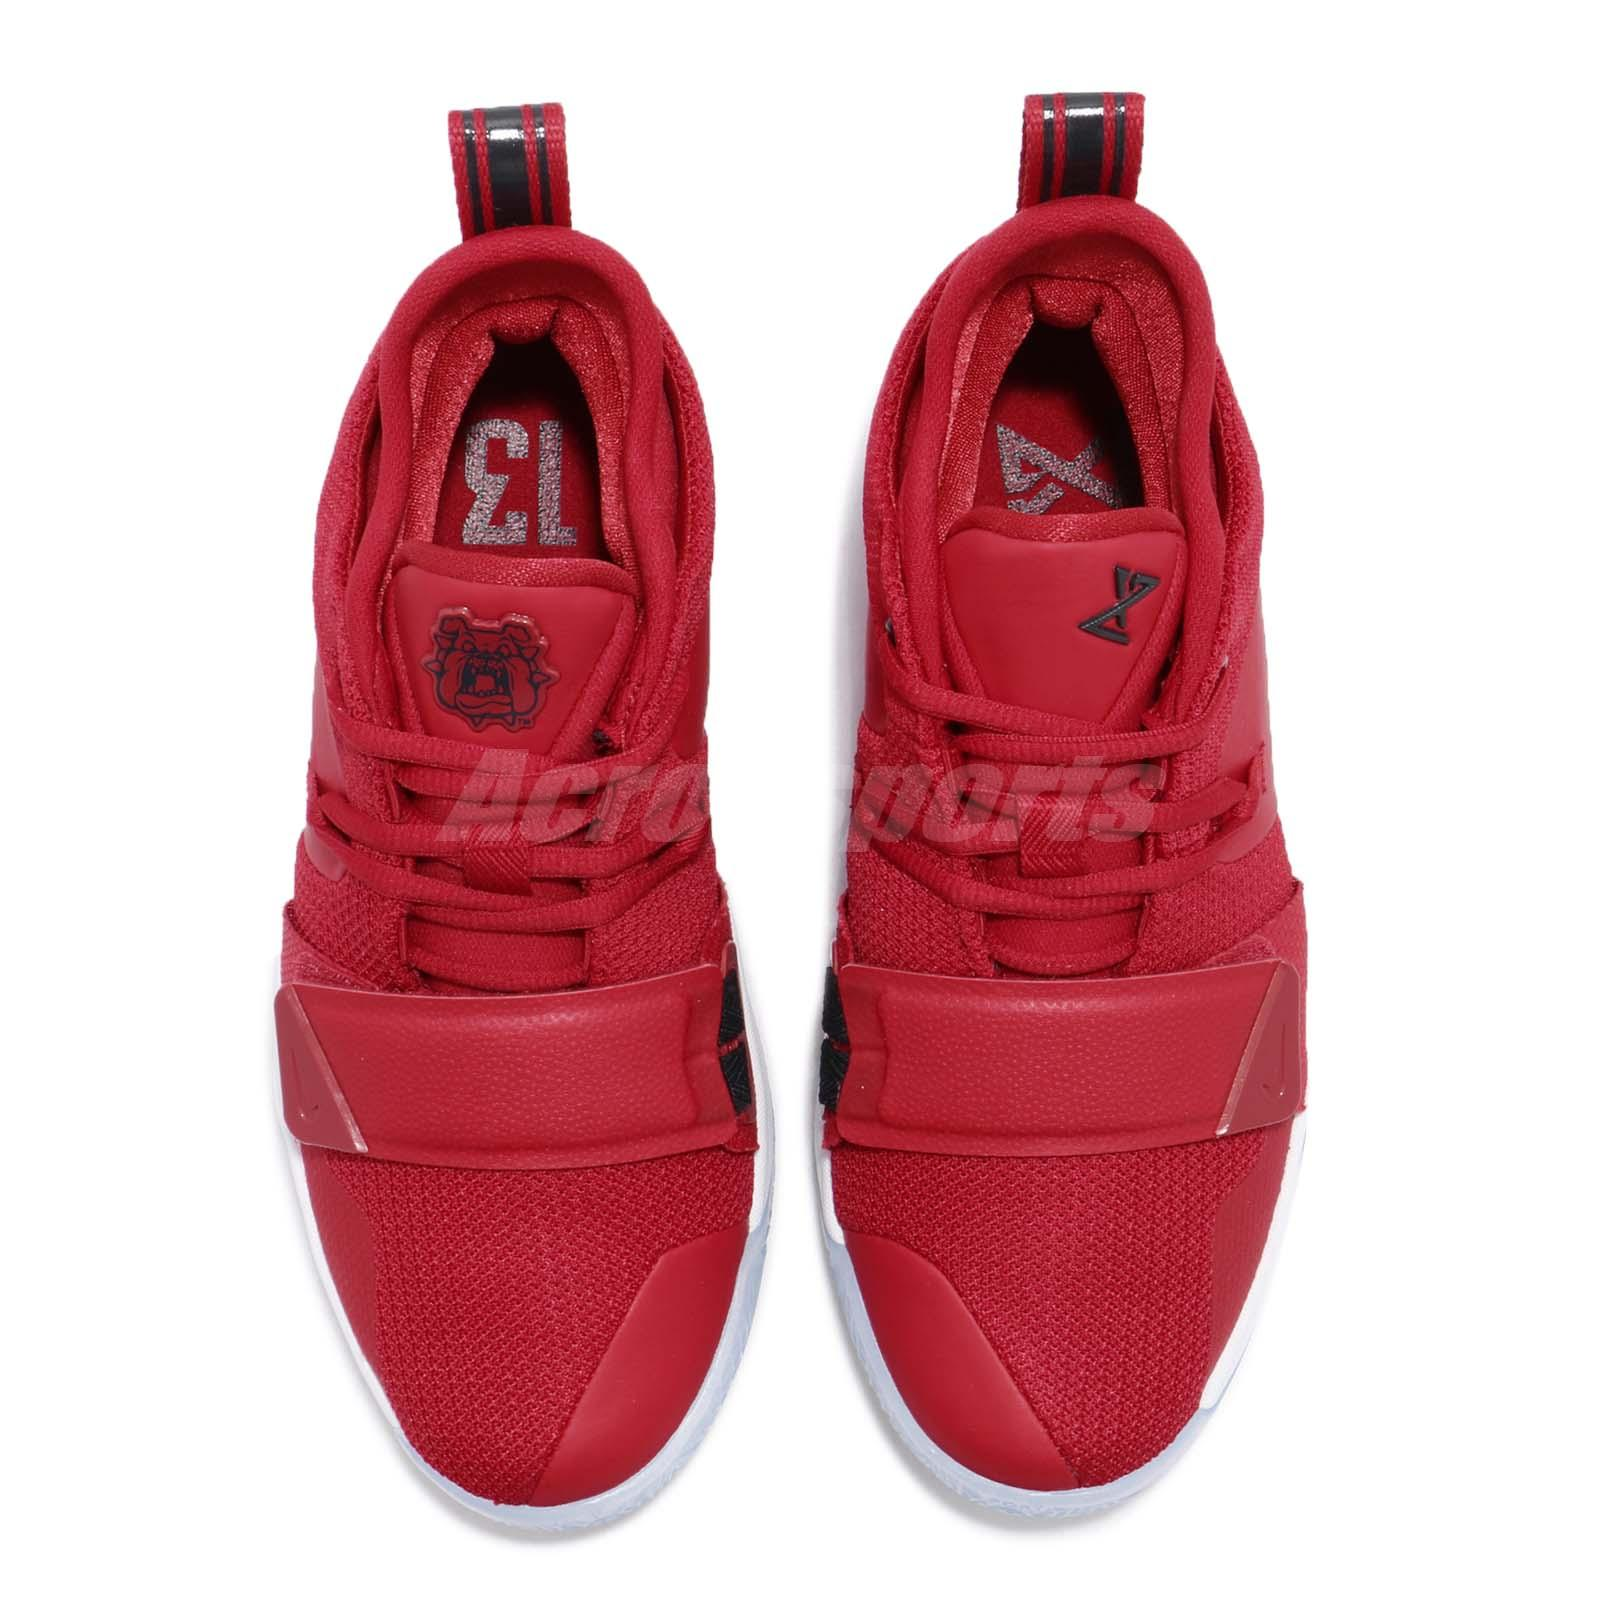 Athletic Shoes Nike Pg 2.5 Gs Fresno St.bulldogs Gym Red Paul George Basketball Shoe Bq9457-600